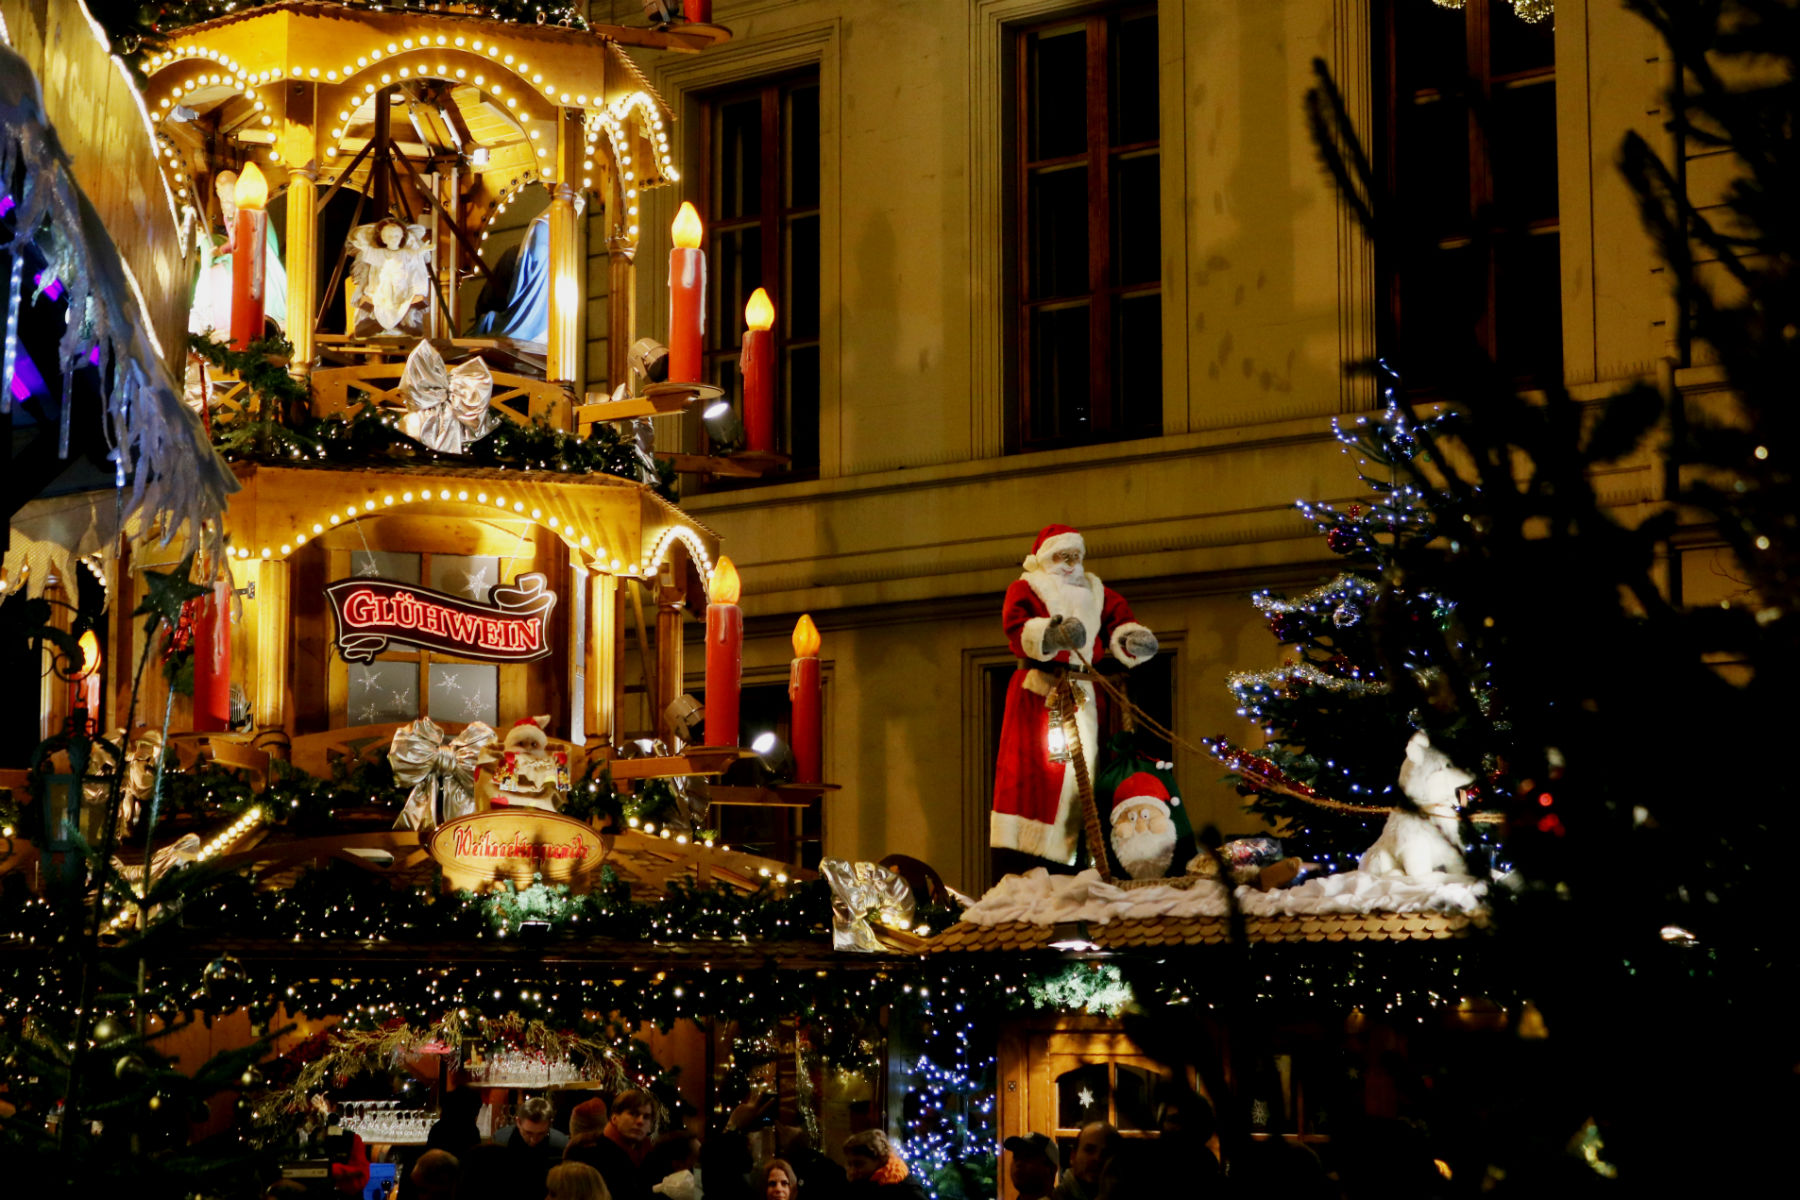 Basel Christmas Market.How To Spend A Winter Weekend In Basel Switzerland